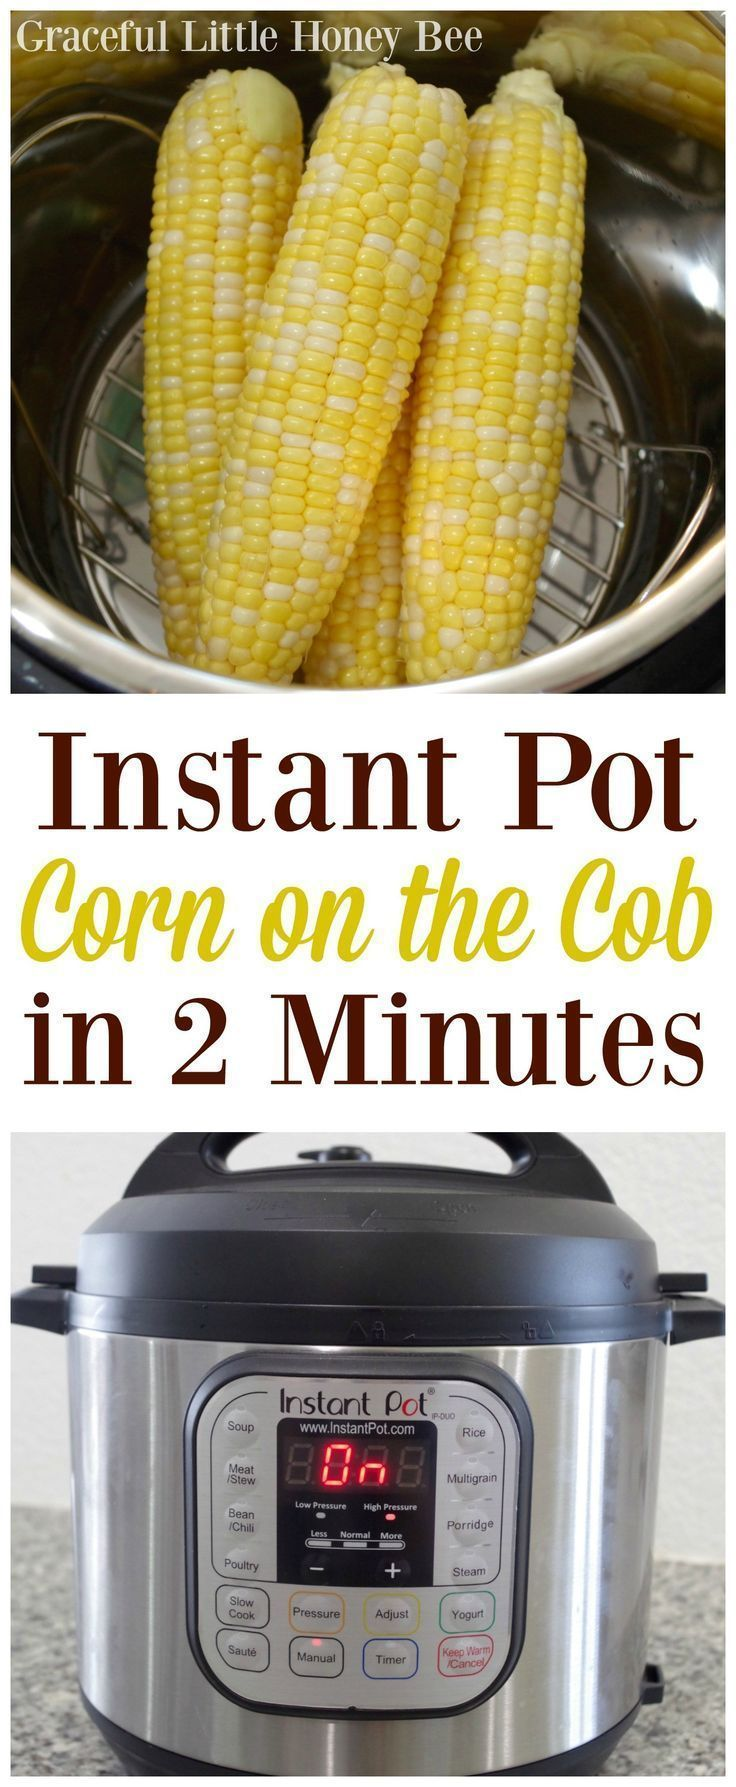 Instant Pot Corn on the Cob in 2 Minutes